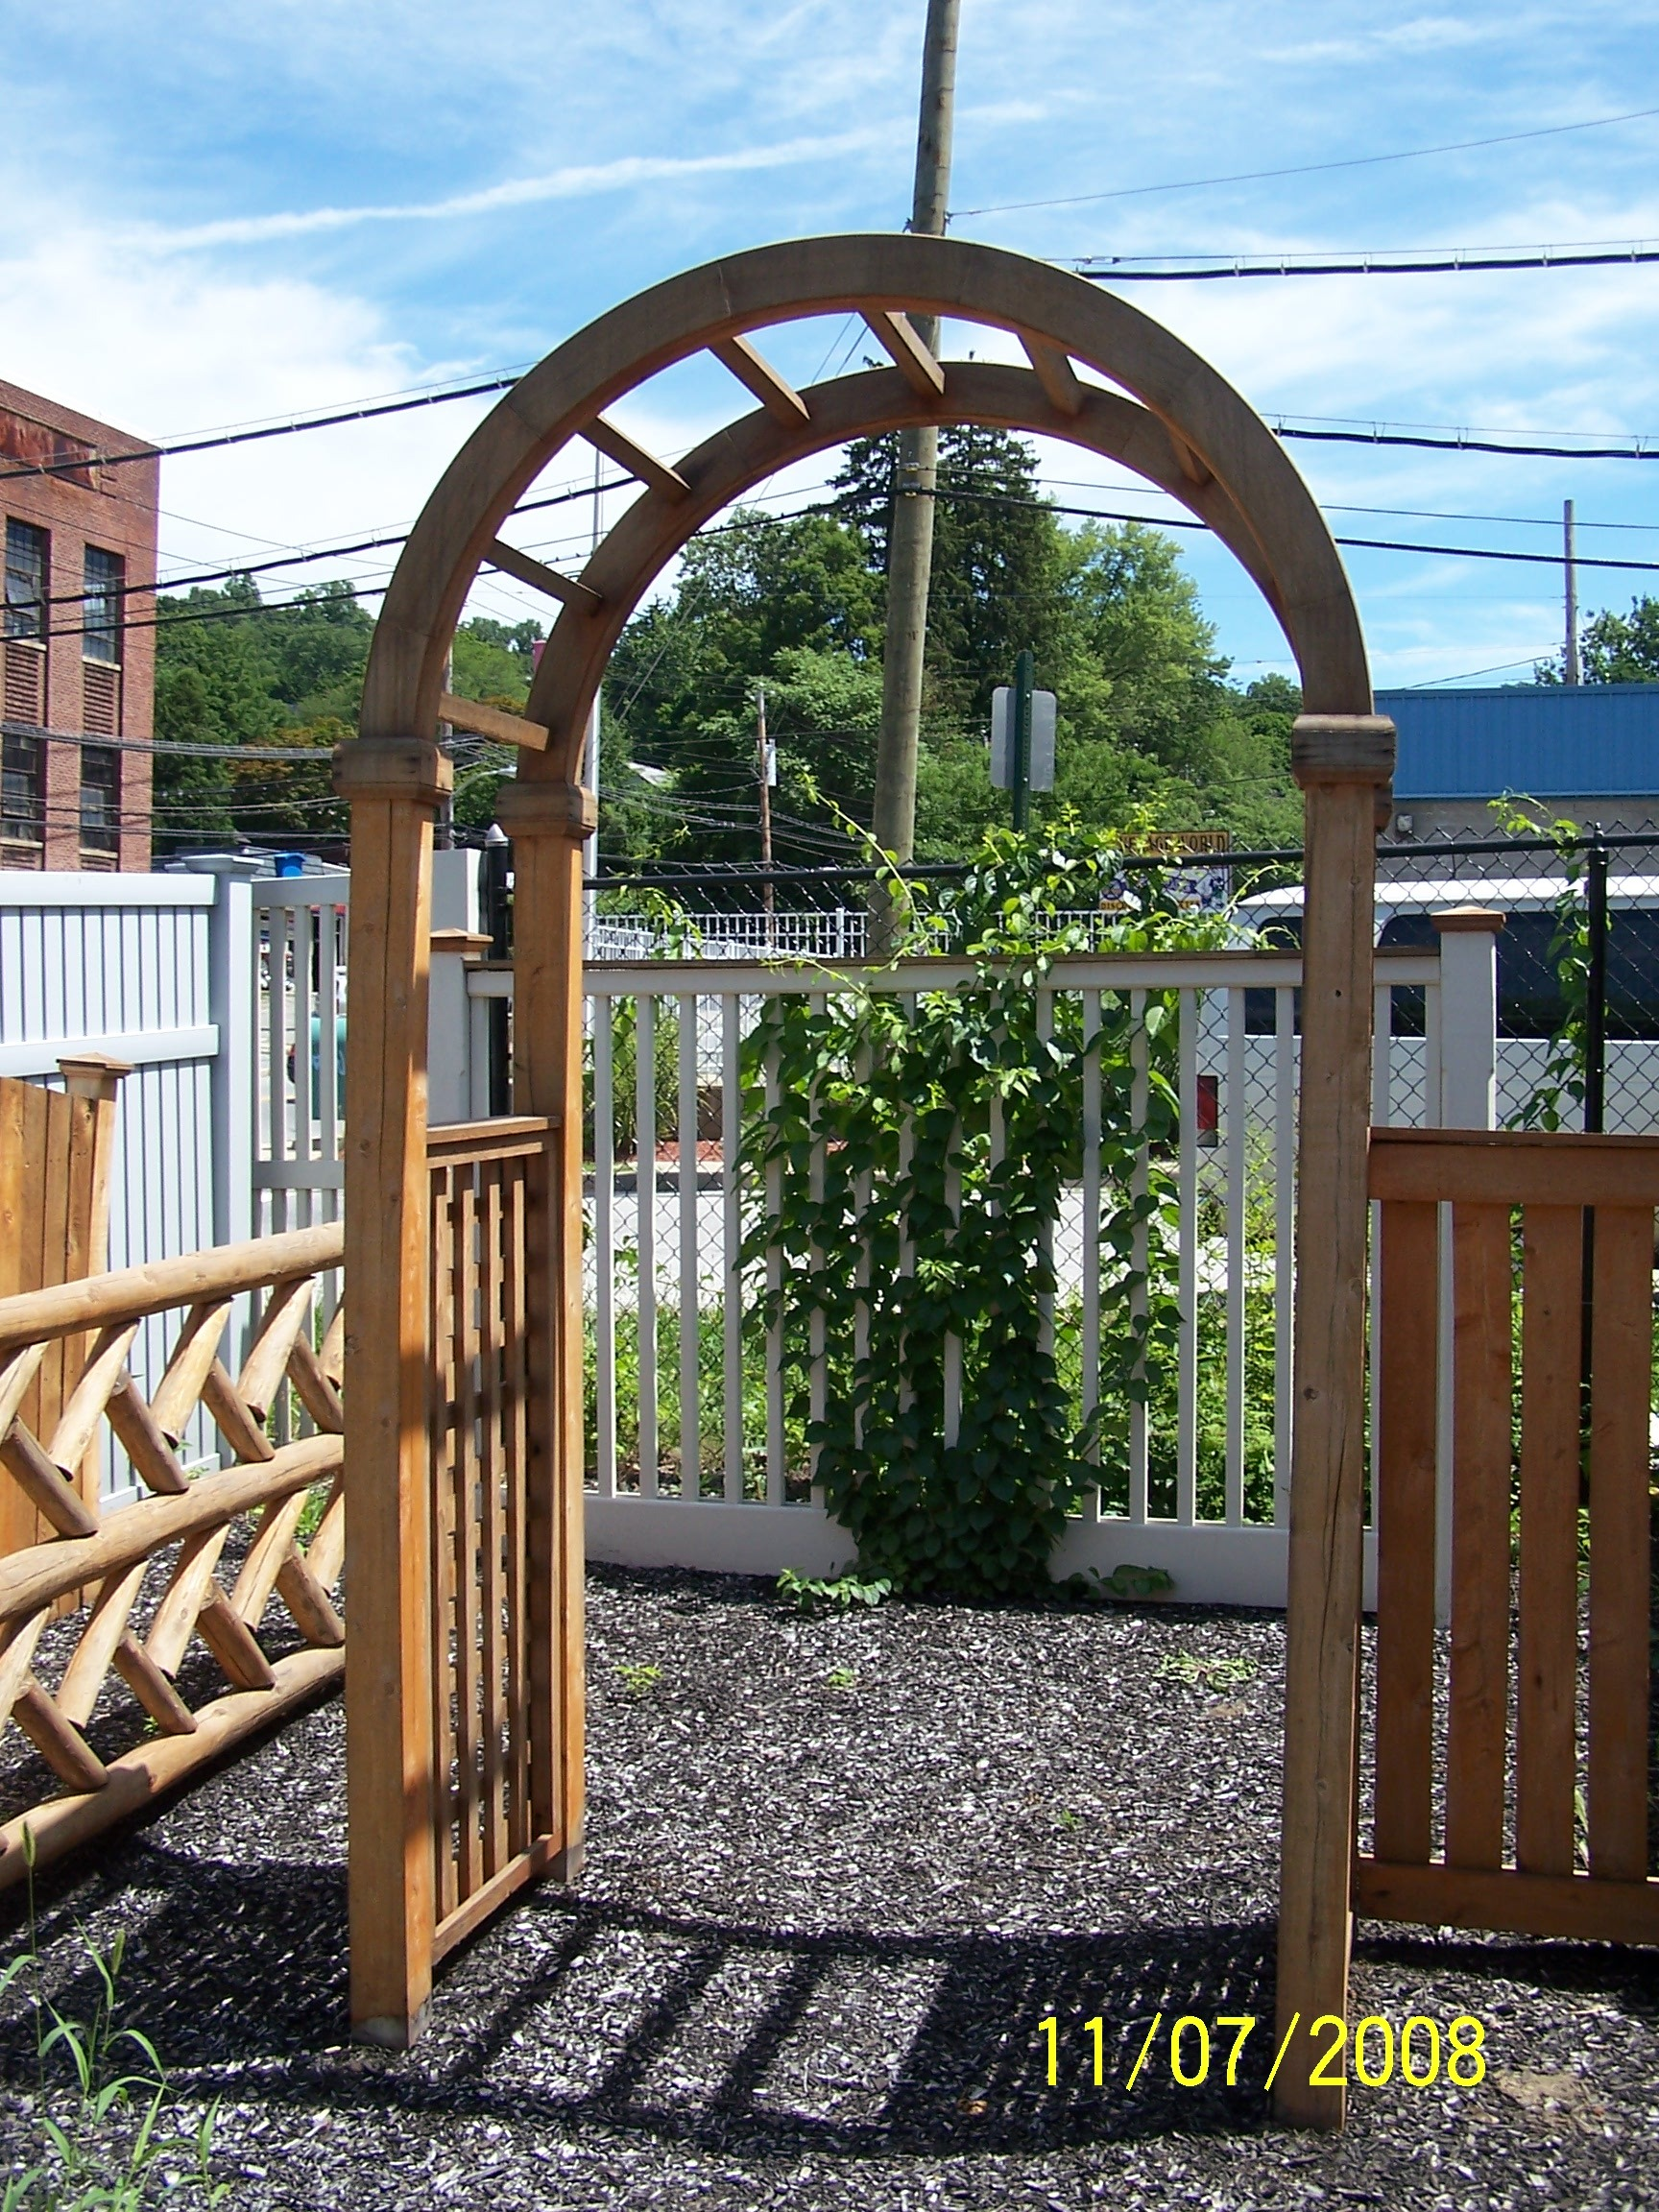 Professional landscape design with fence installation in Croton-on-Hudson, NY